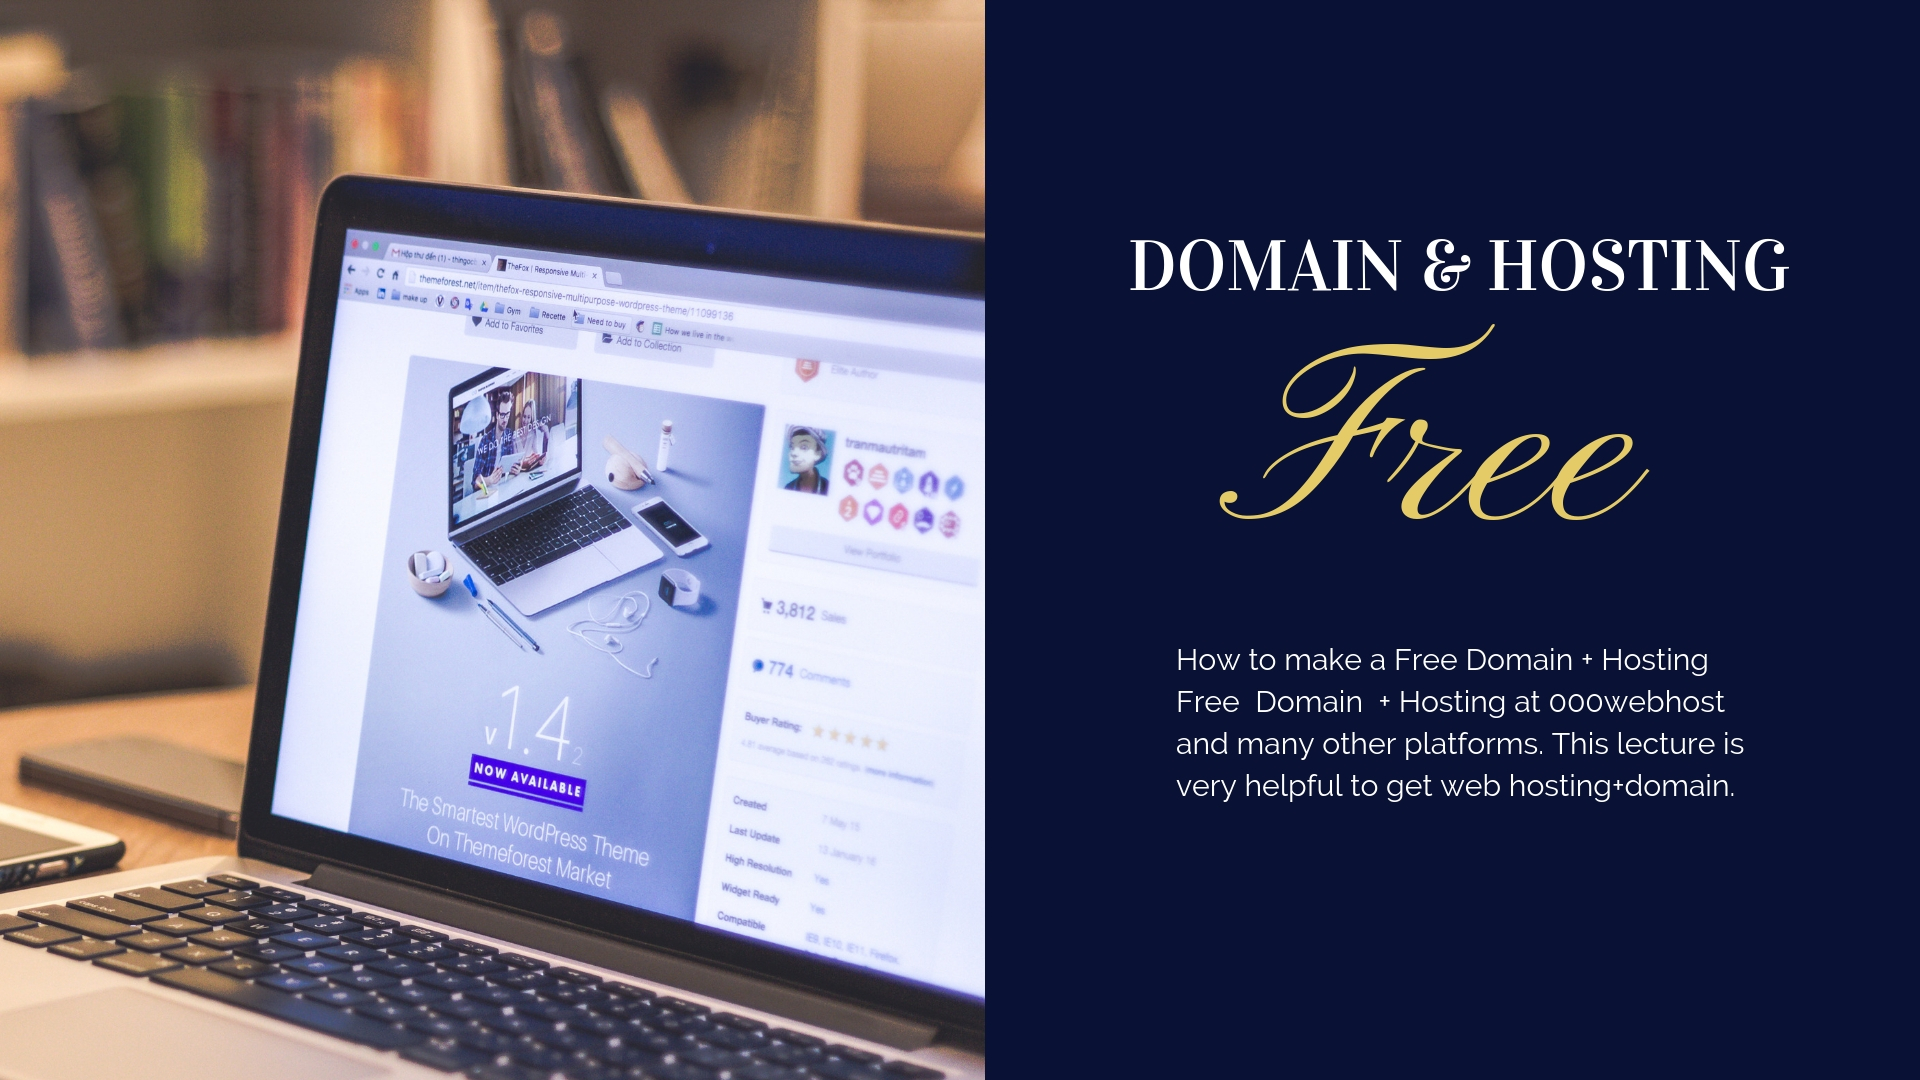 How to make a free Domain + Hosting? complete series